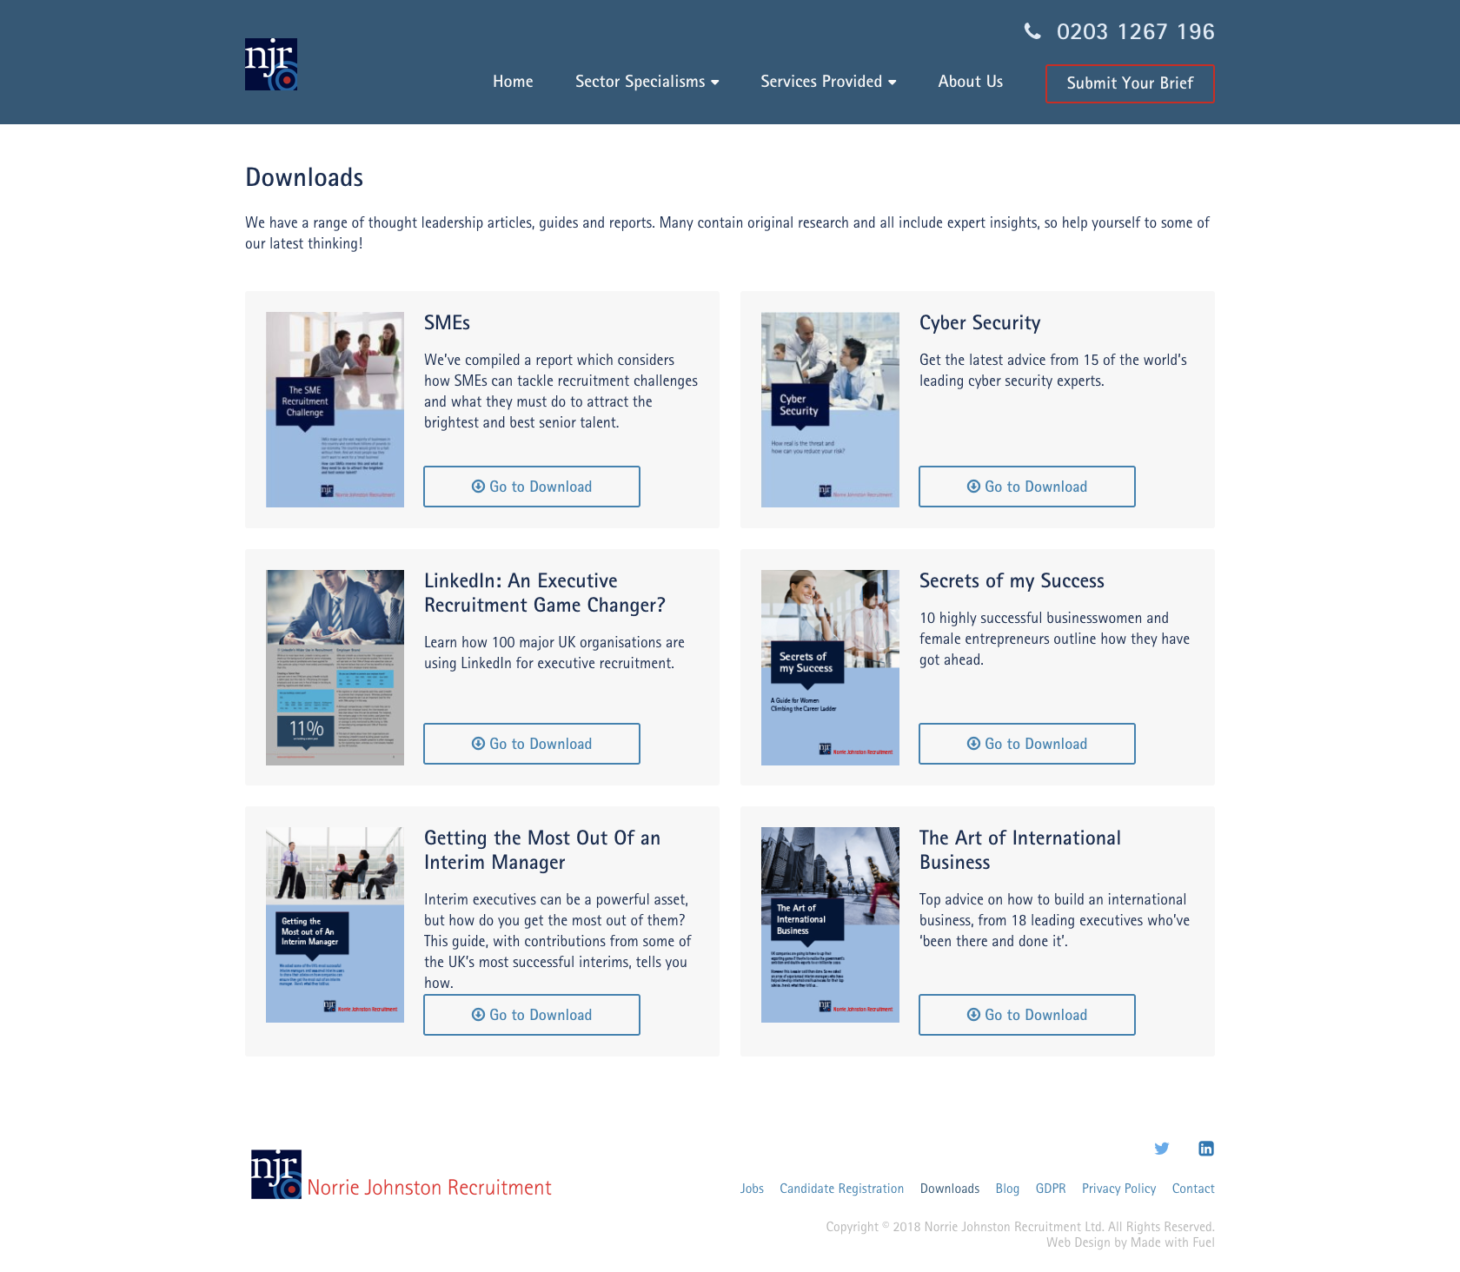 Norrie Johnston Recruitment - Downloadable Guides